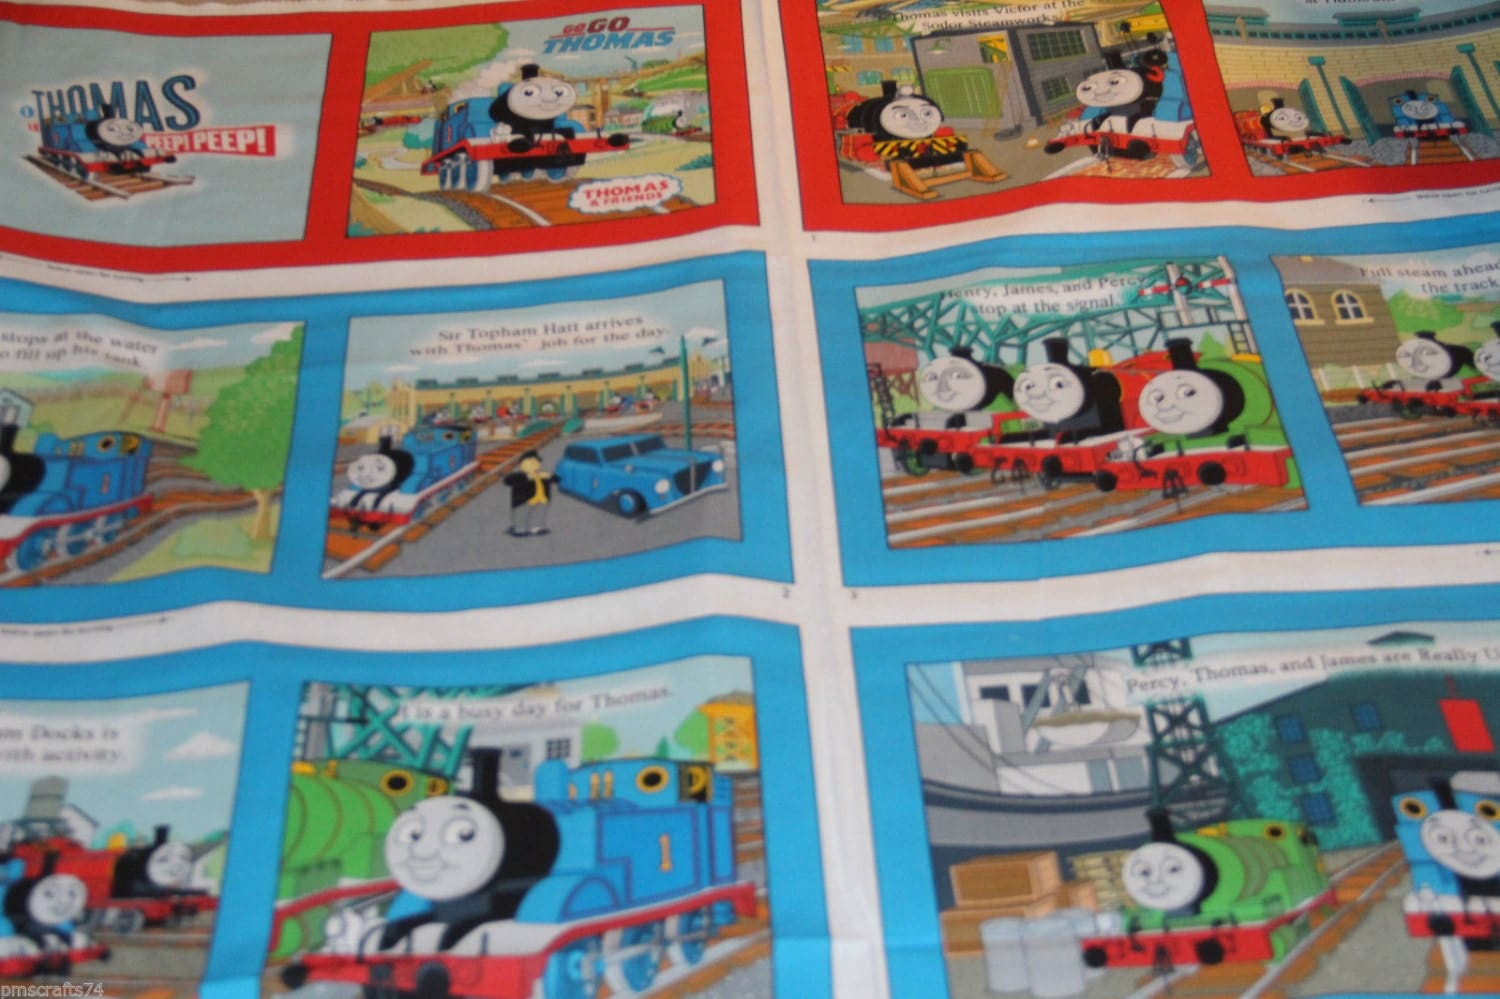 Vip cranston thomas the train fabric book fabric by pmscrafts for Kids train fabric